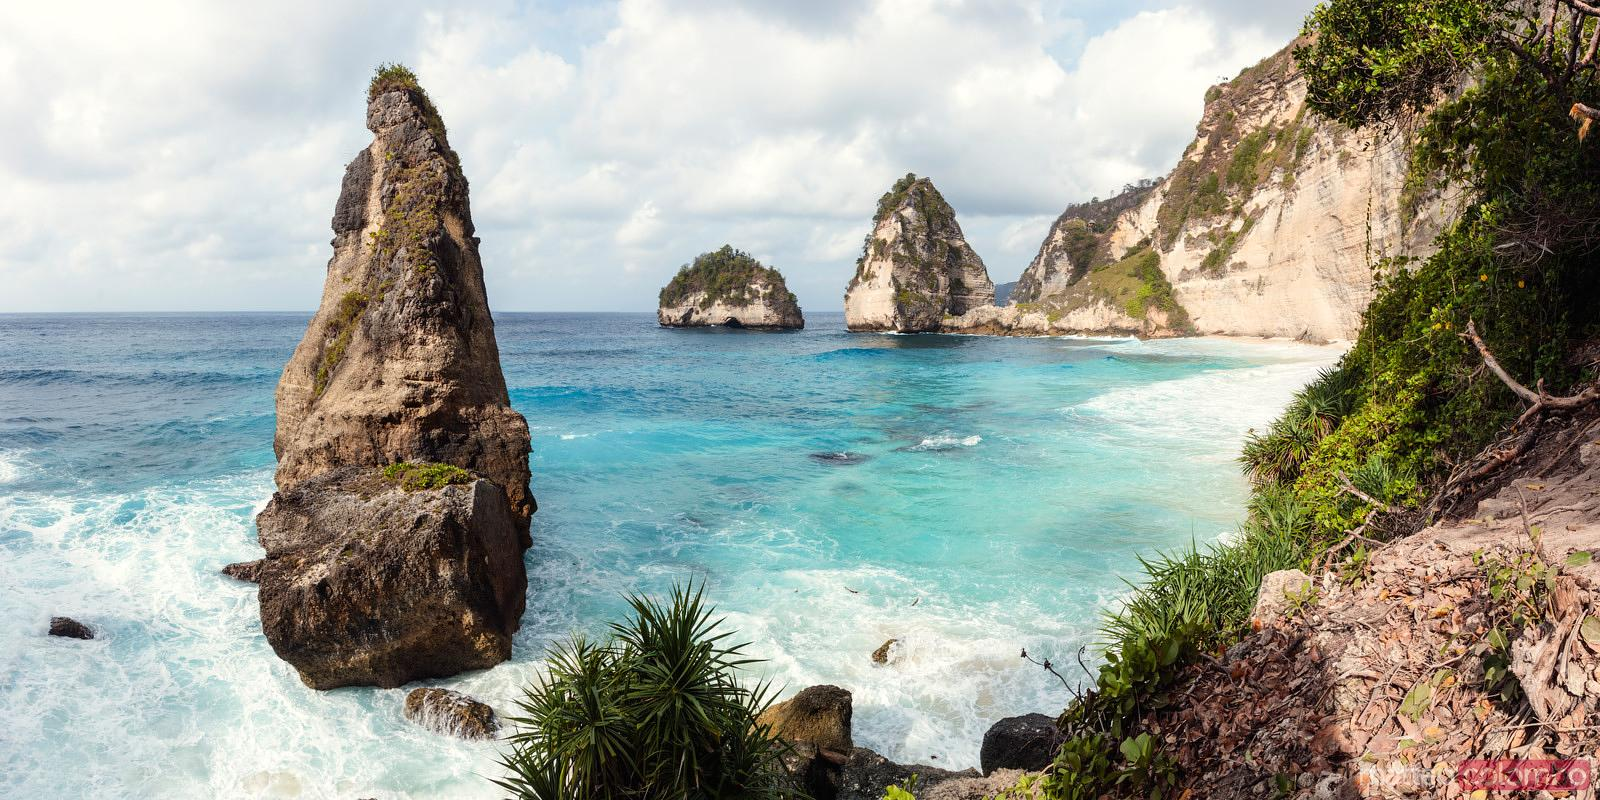 Diamond beach panoramic, Nusa Penida, Bali, Indonesia